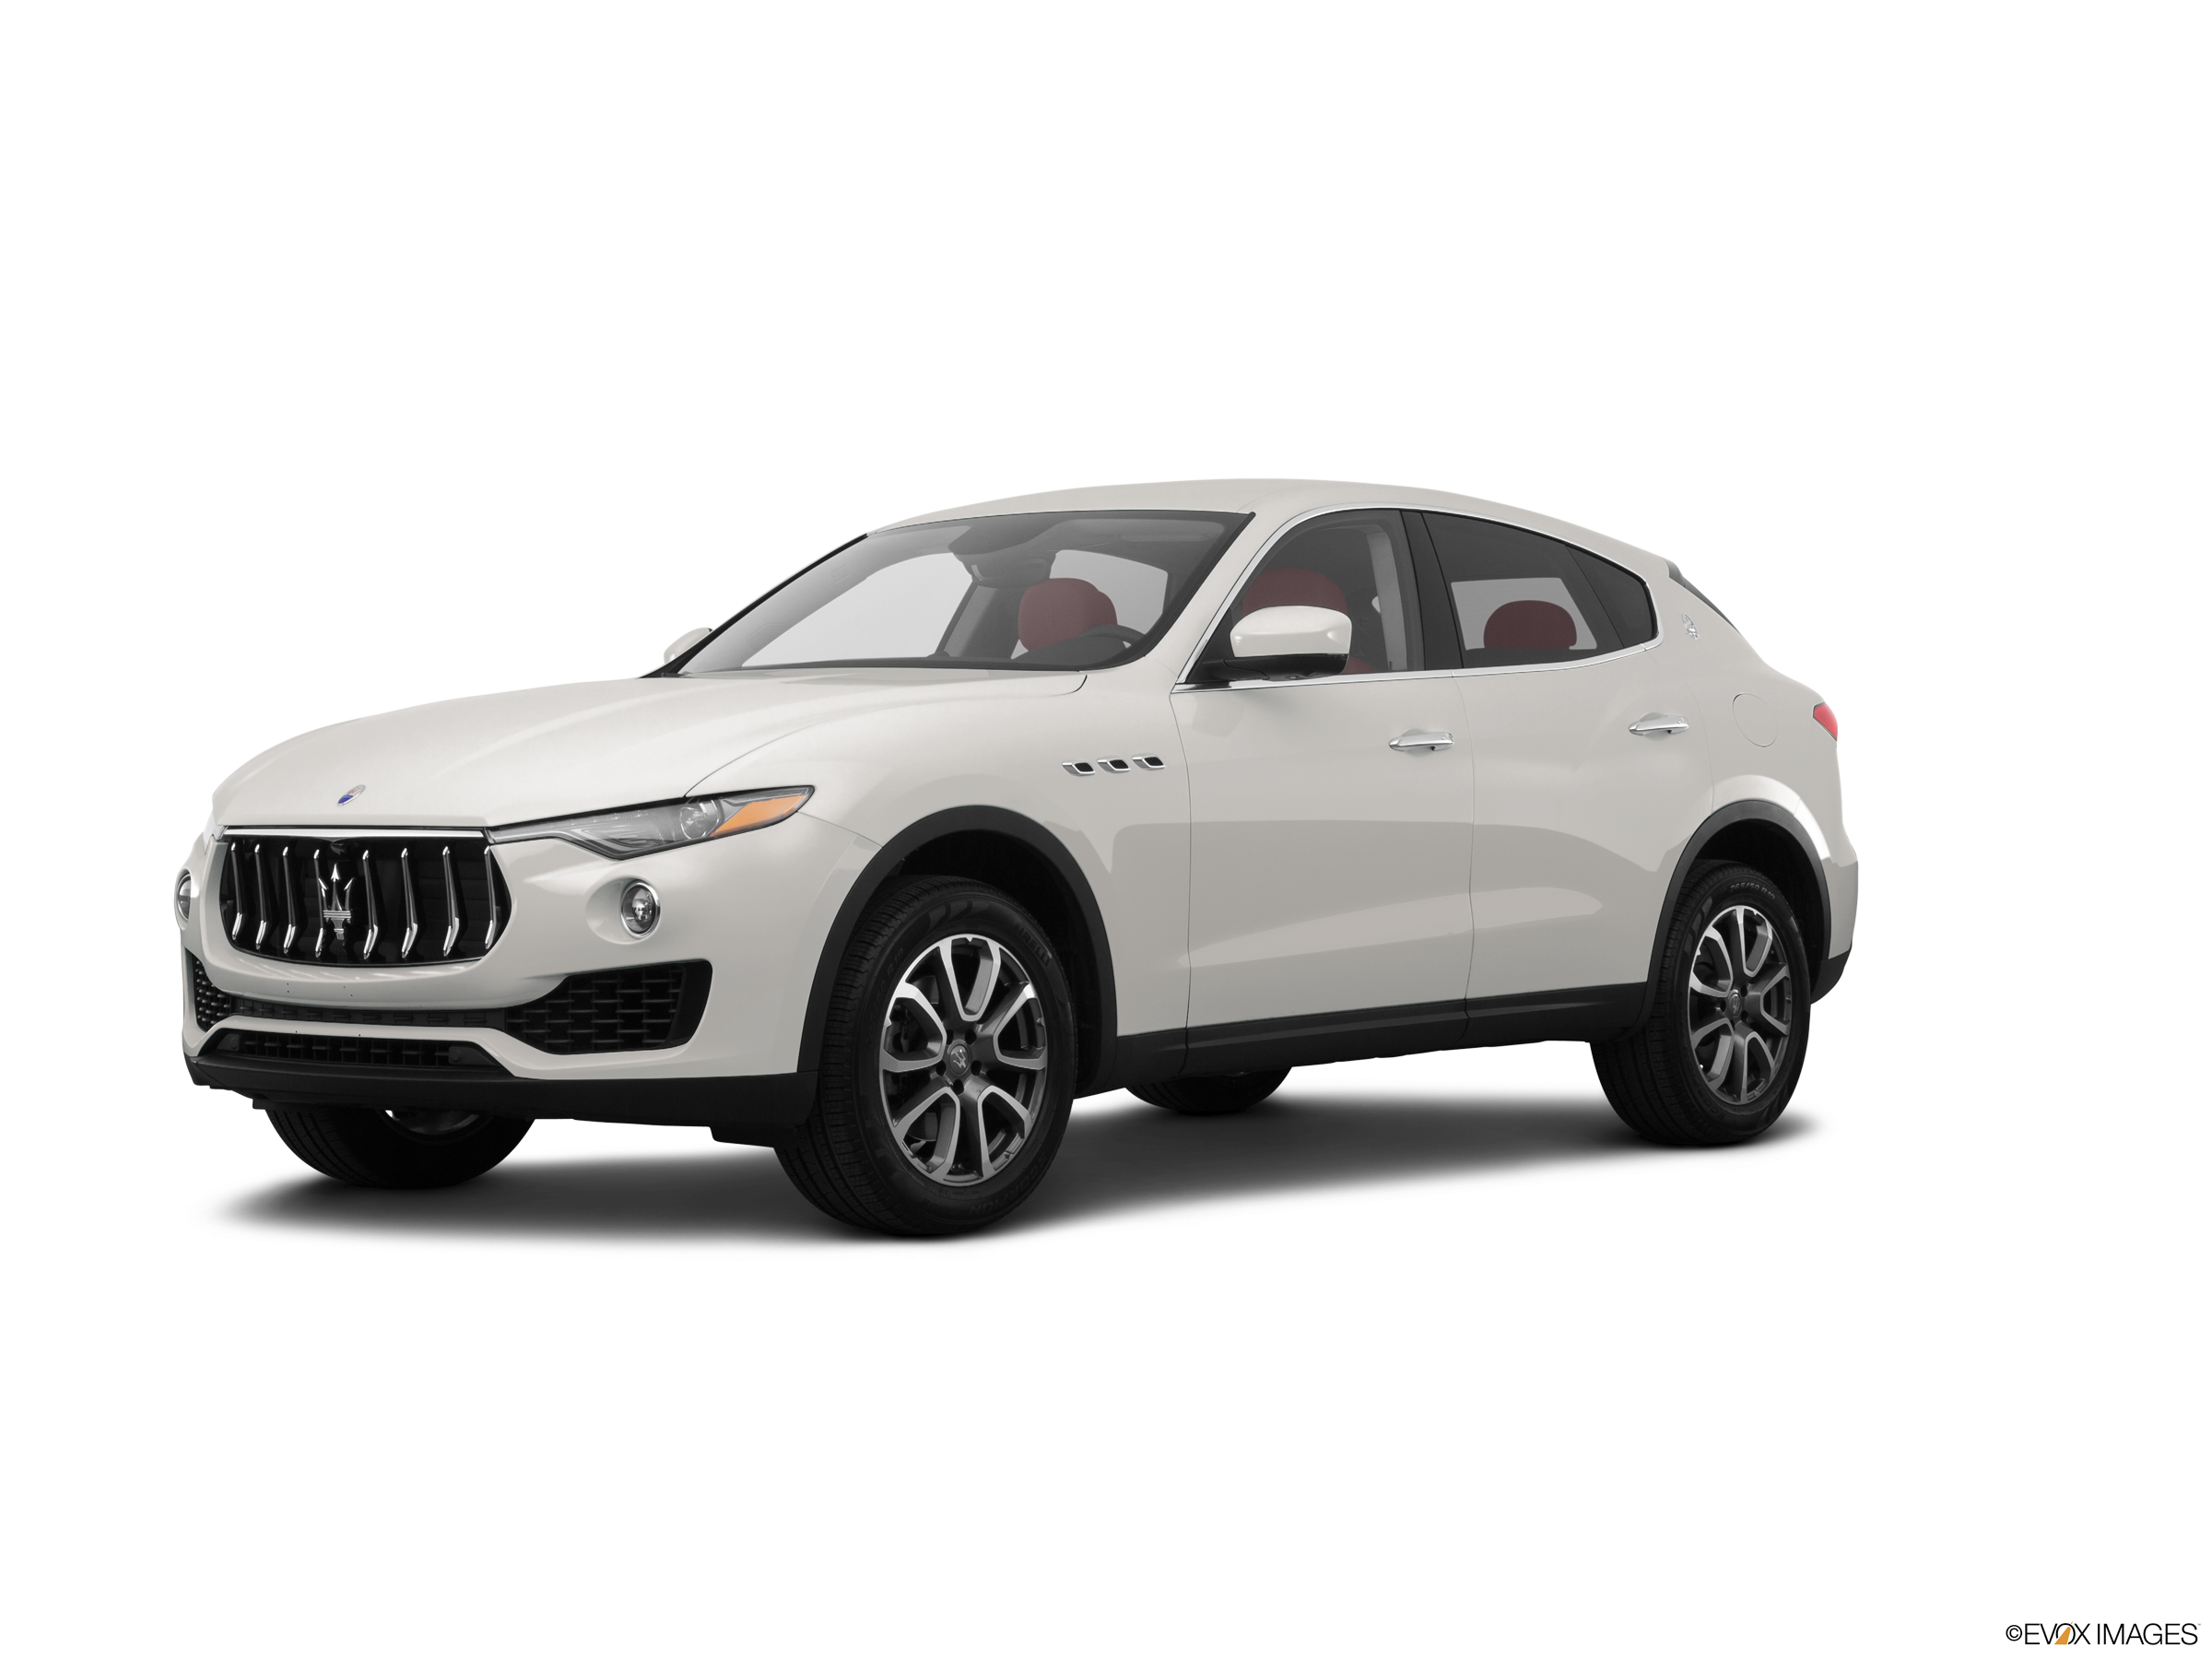 2019 Maserati Levante Prices Reviews Pictures Kelley Blue Book